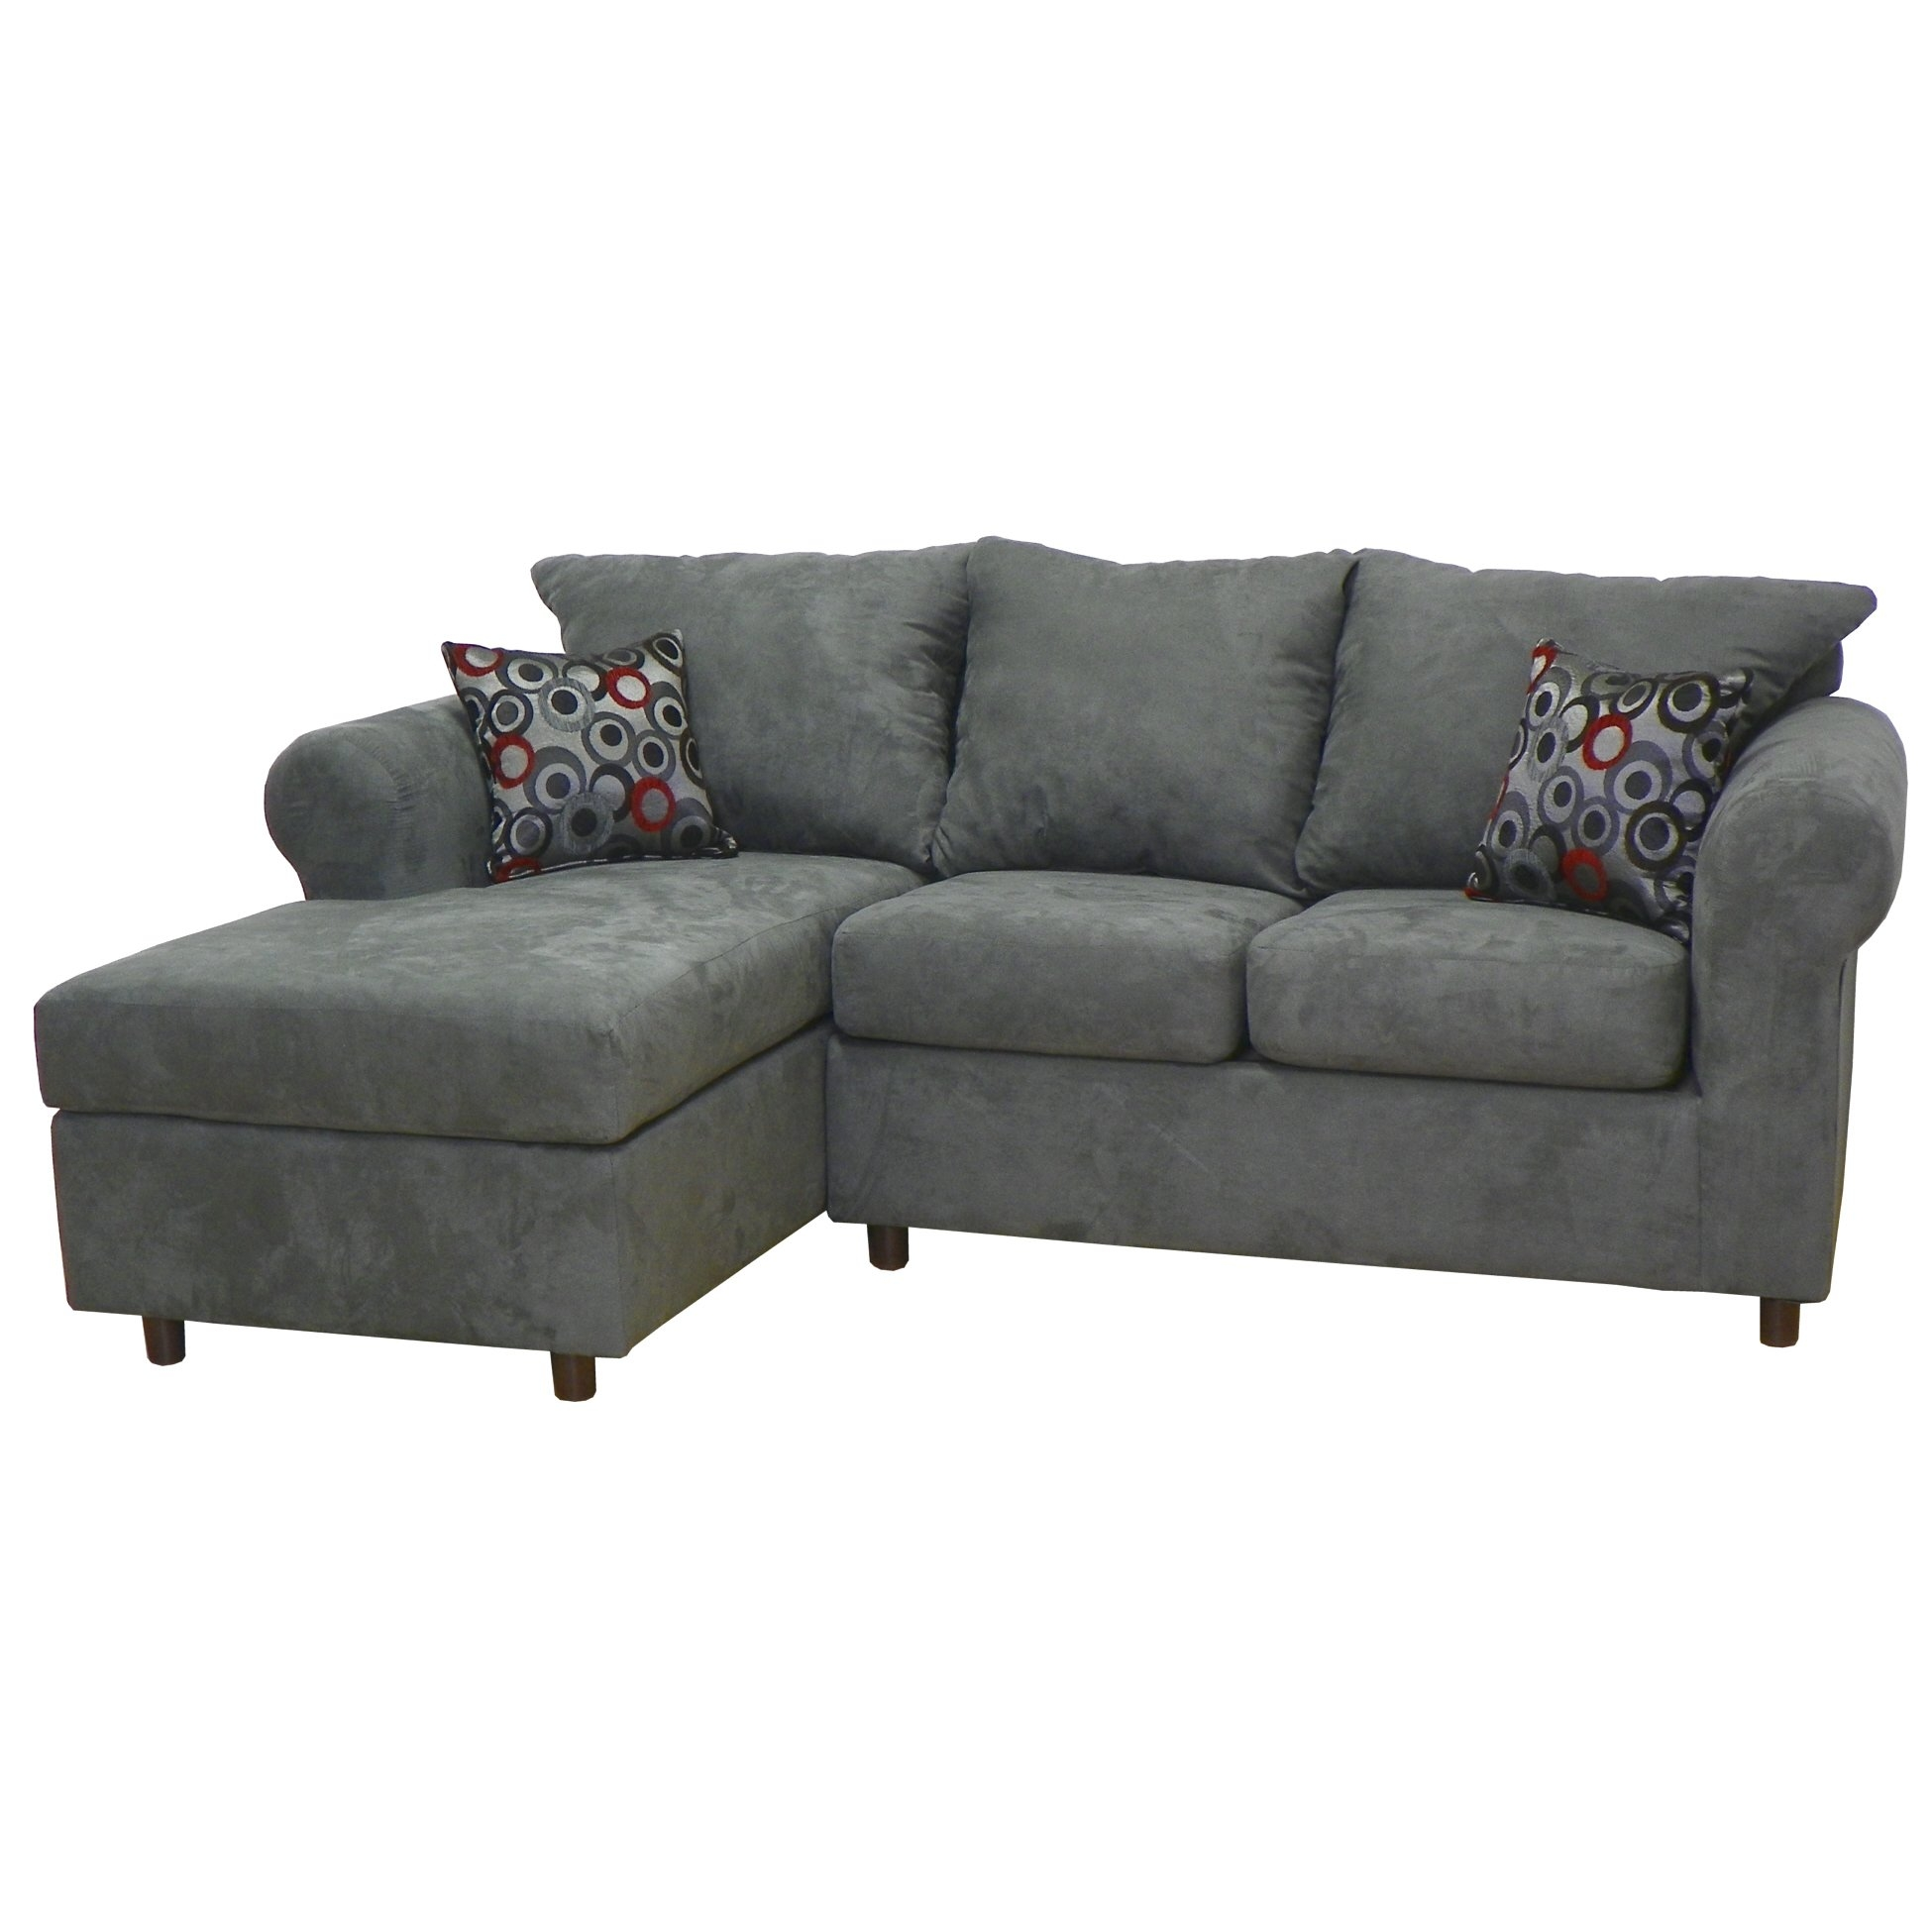 Sectional Sofas Youll Love Wayfair With Regard To 10 Piece Sectional Sofa (Image 13 of 15)